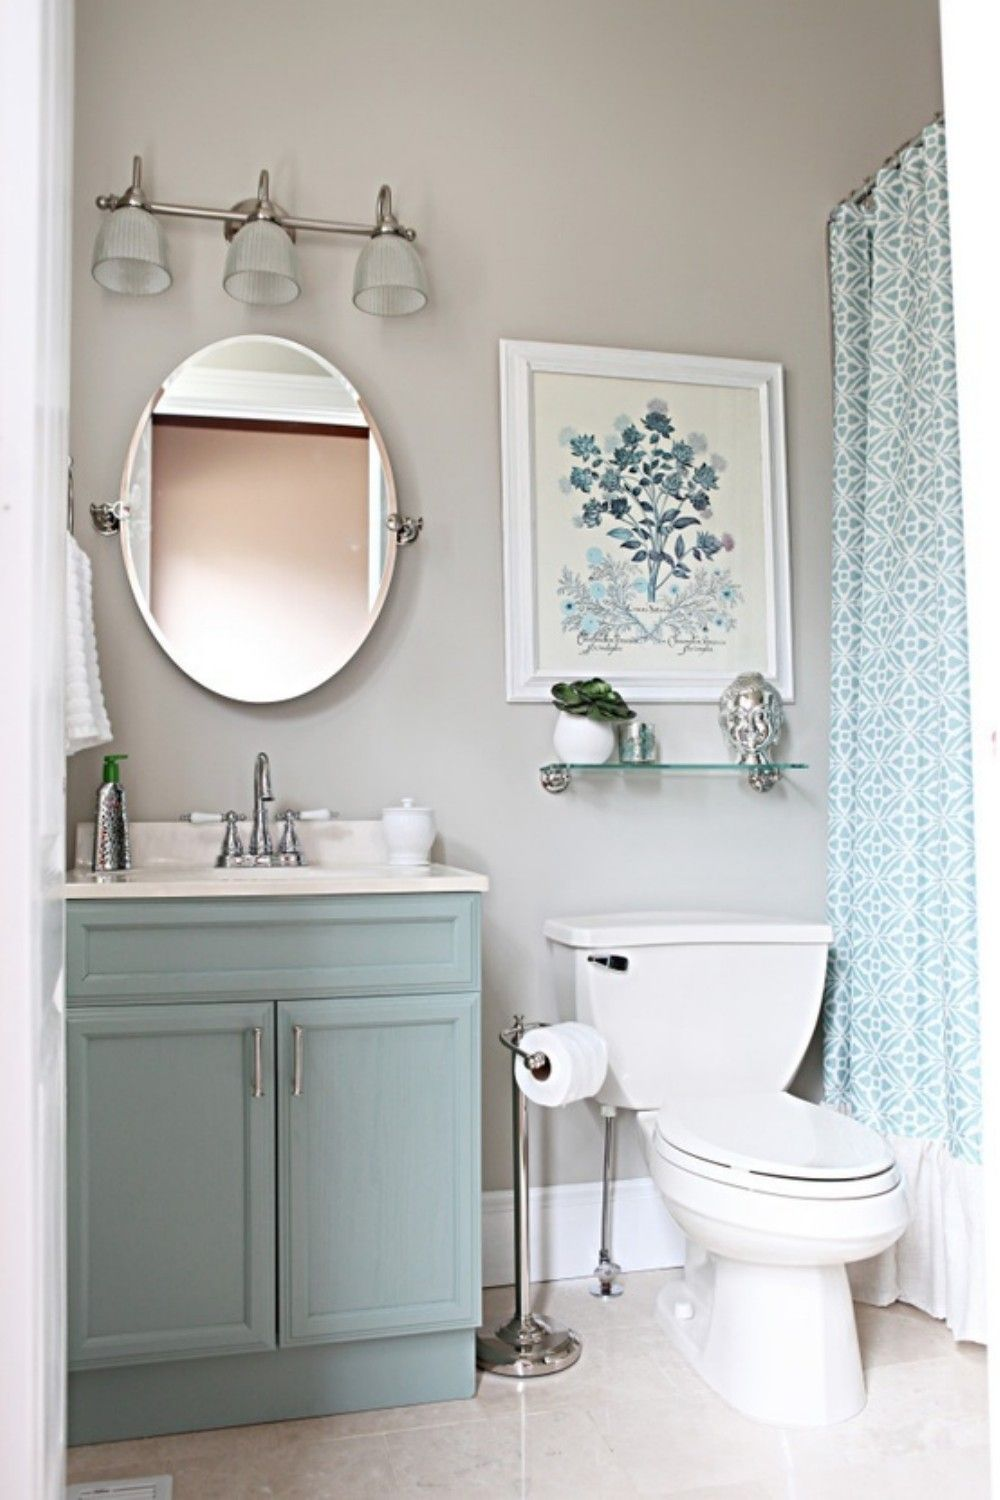 35 Pure And White Bathroom Decor To Make Your Small Bathroom Looks Spacious